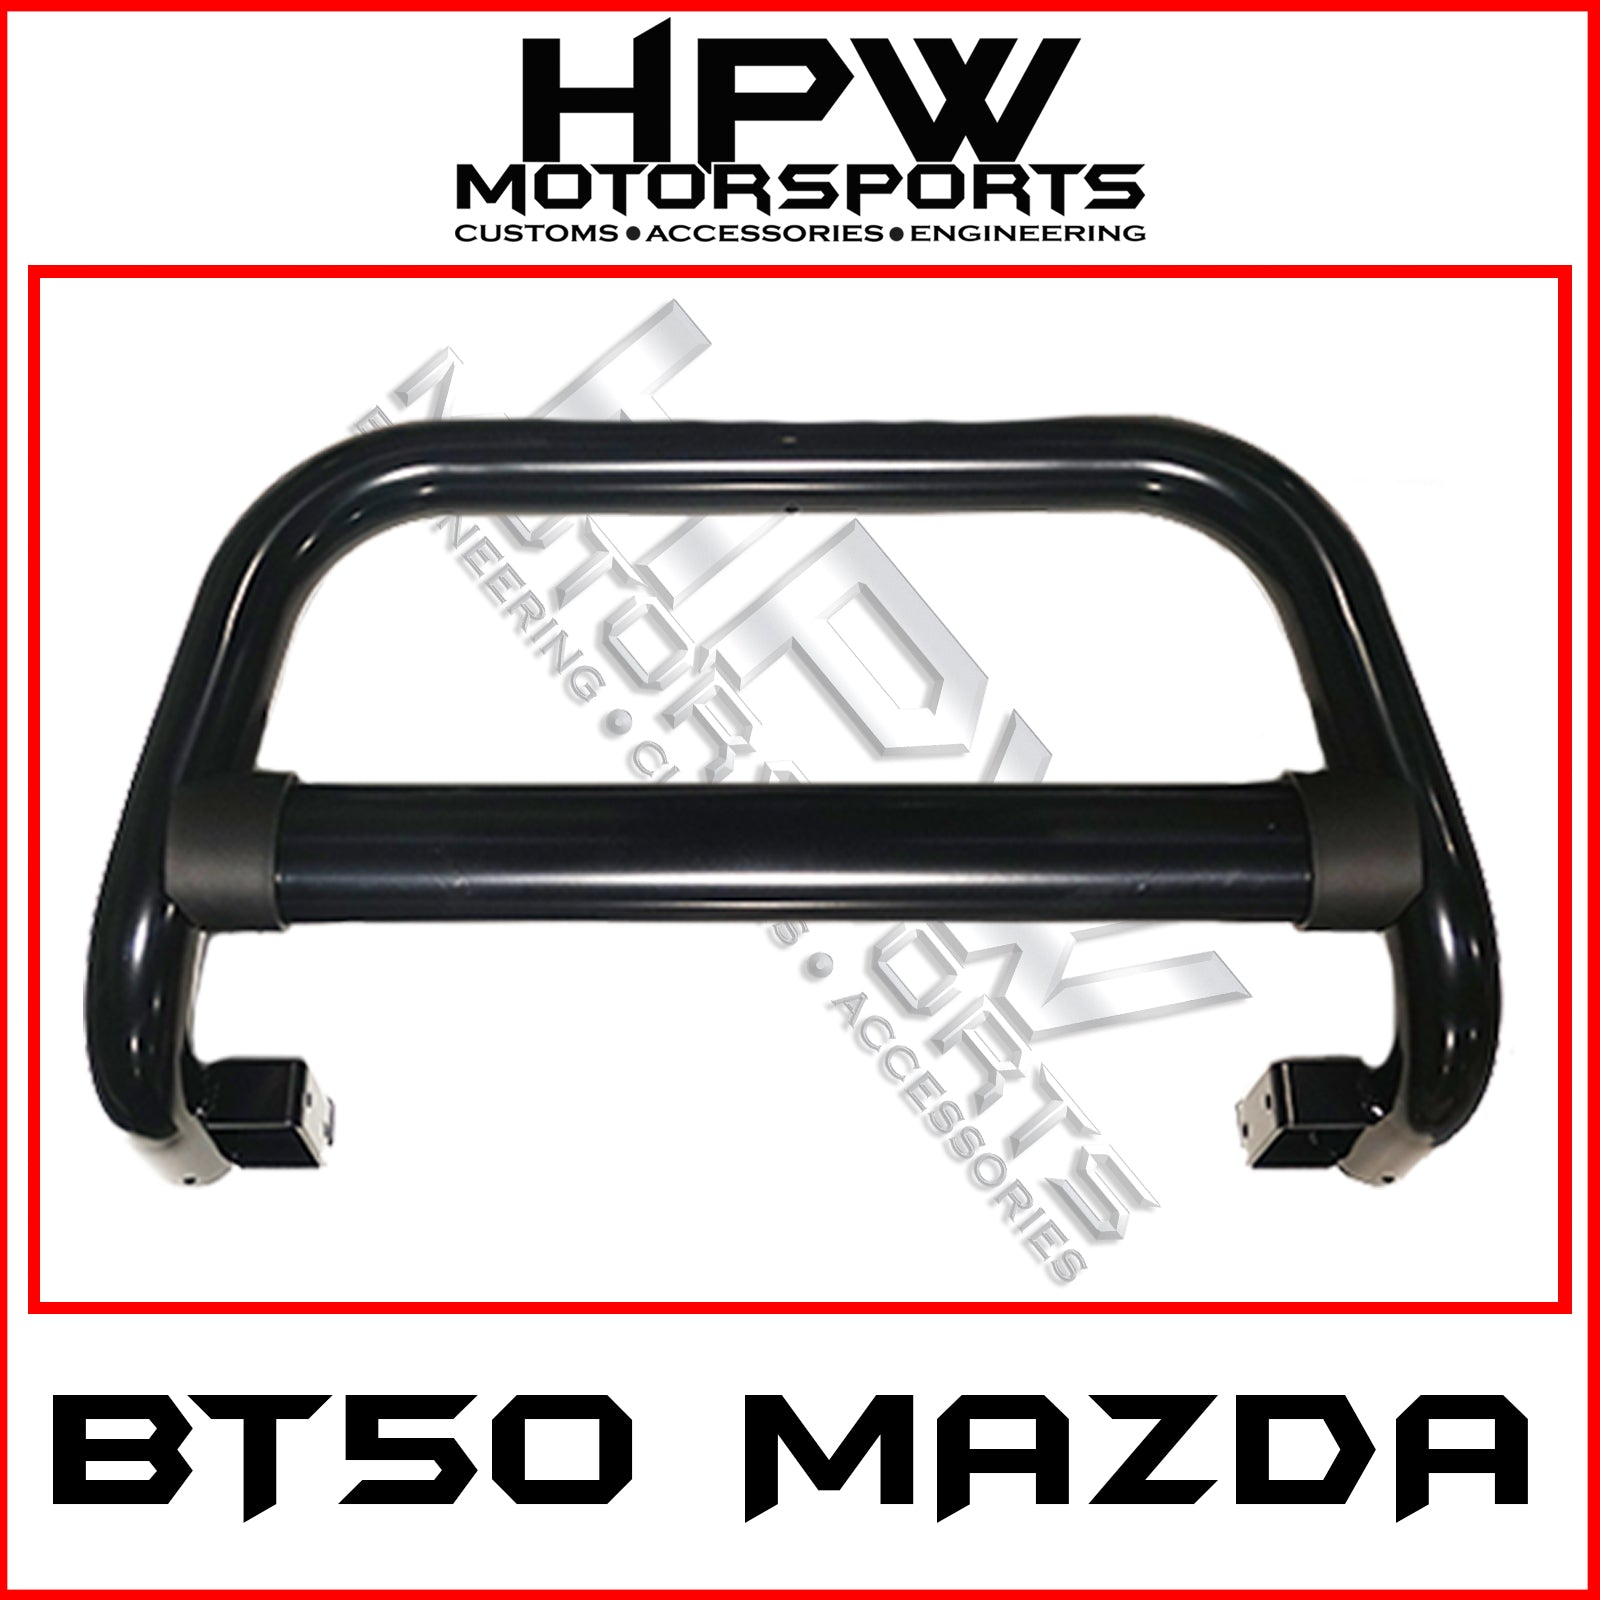 Nudge bar to suit Mazda BT50 - Black powder coat